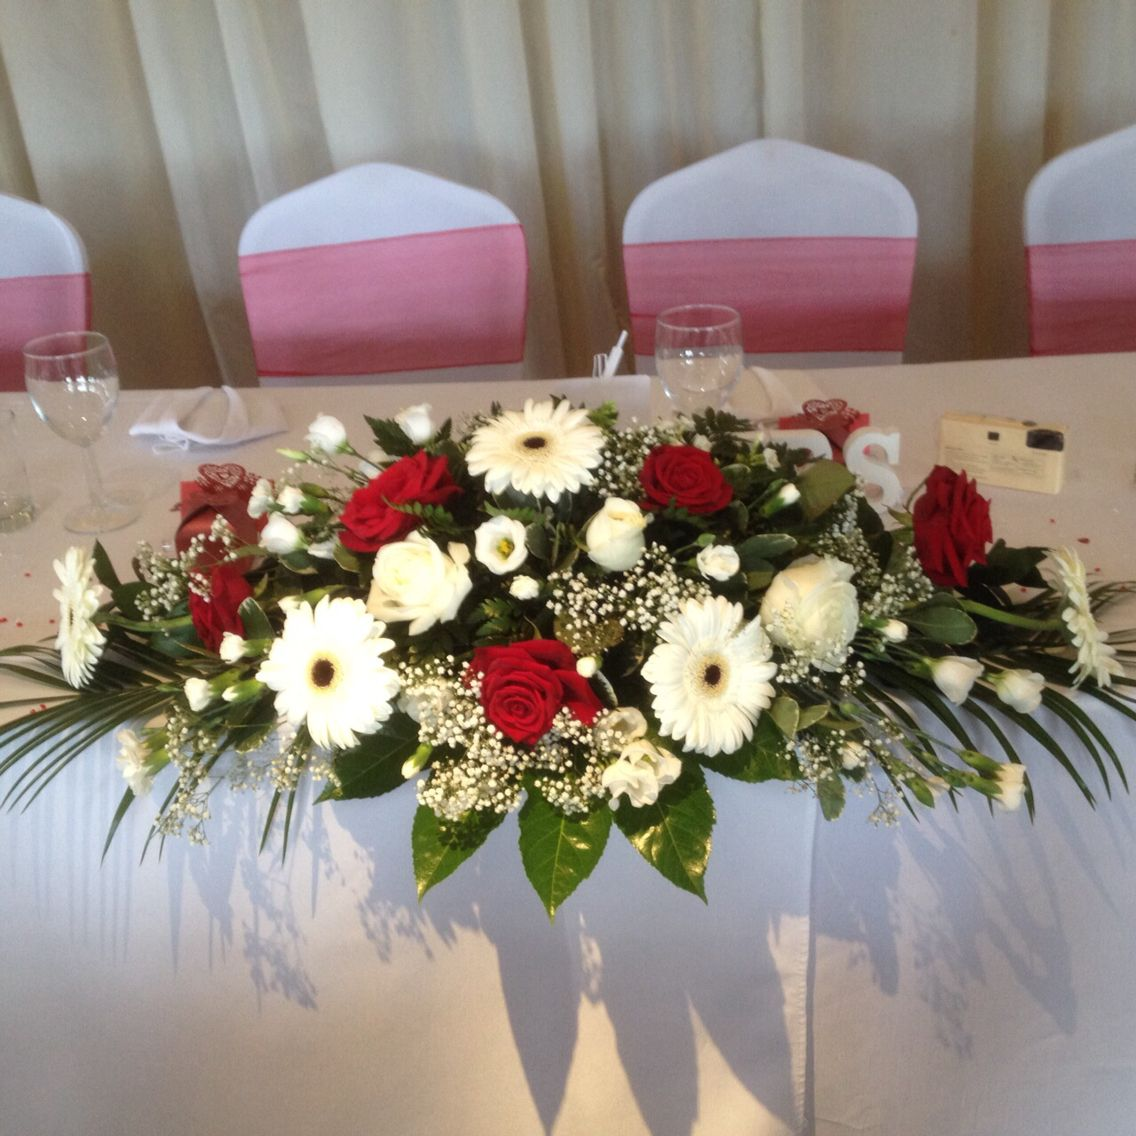 Top Table Arrangement Wedding Flower Arrangements Table Table Flower Arrangements Wedding Table Flowers